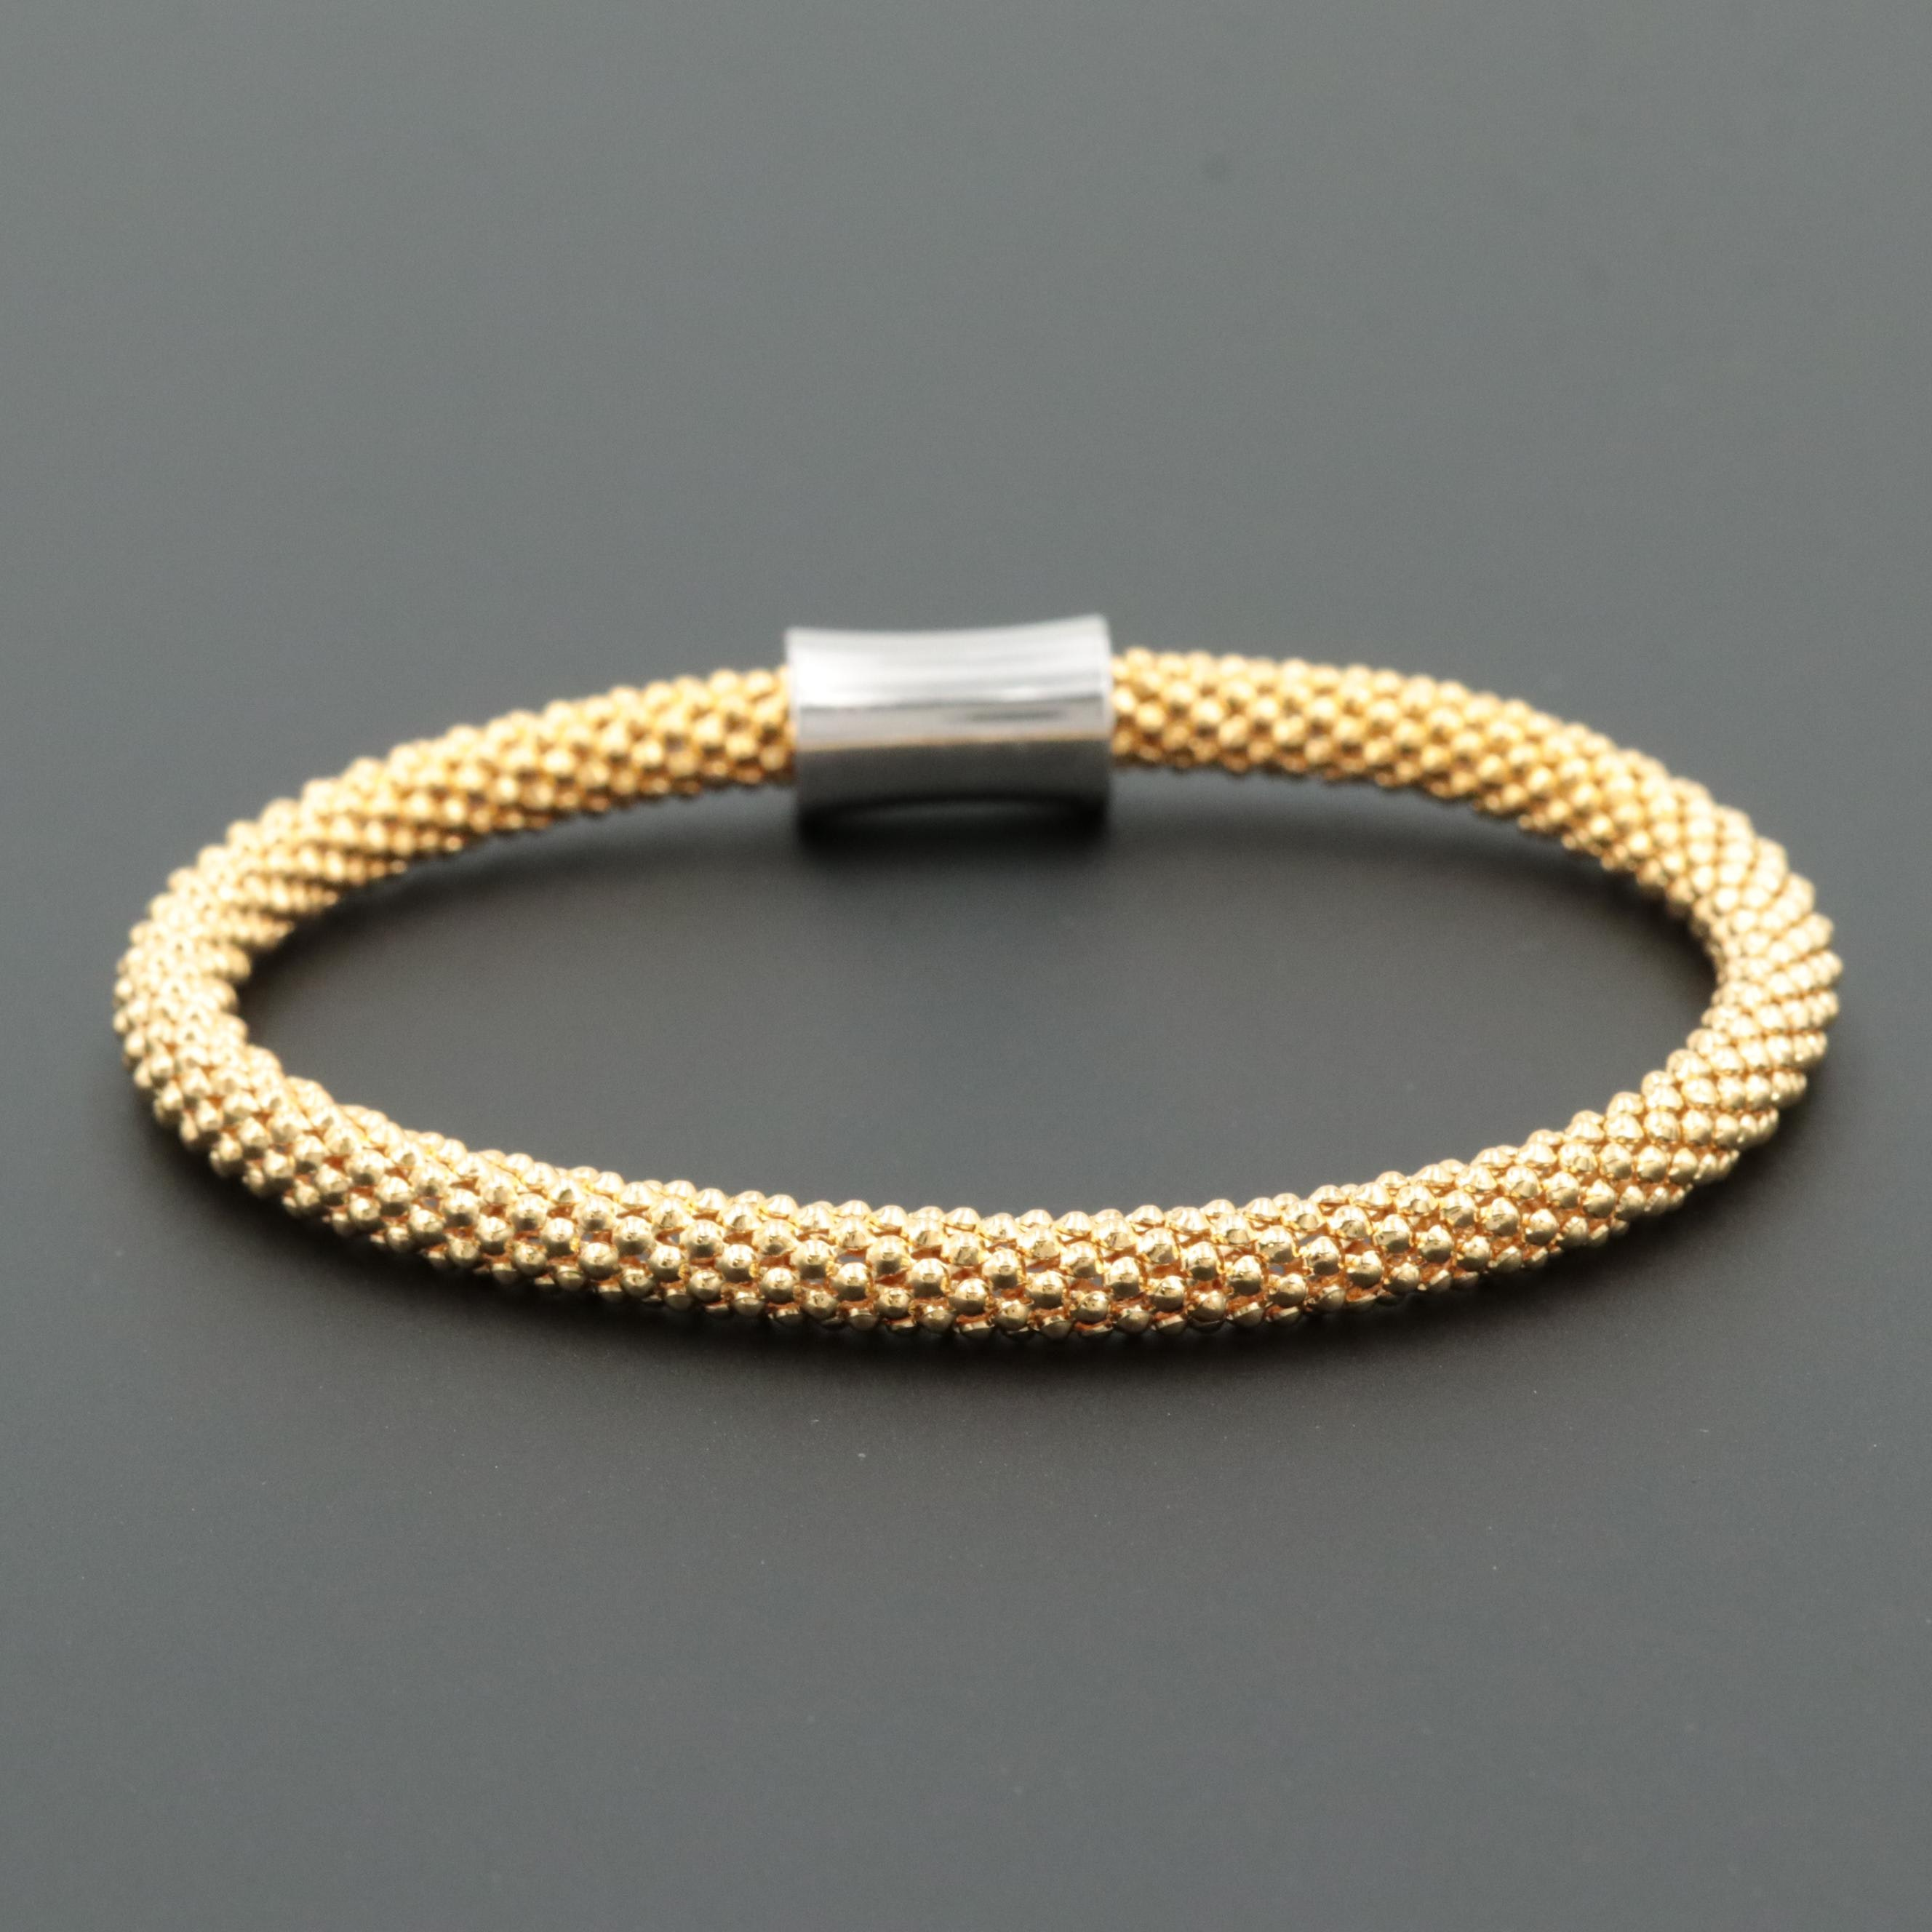 Gold Wash on Sterling Silver Flexible Bangle Bracelet